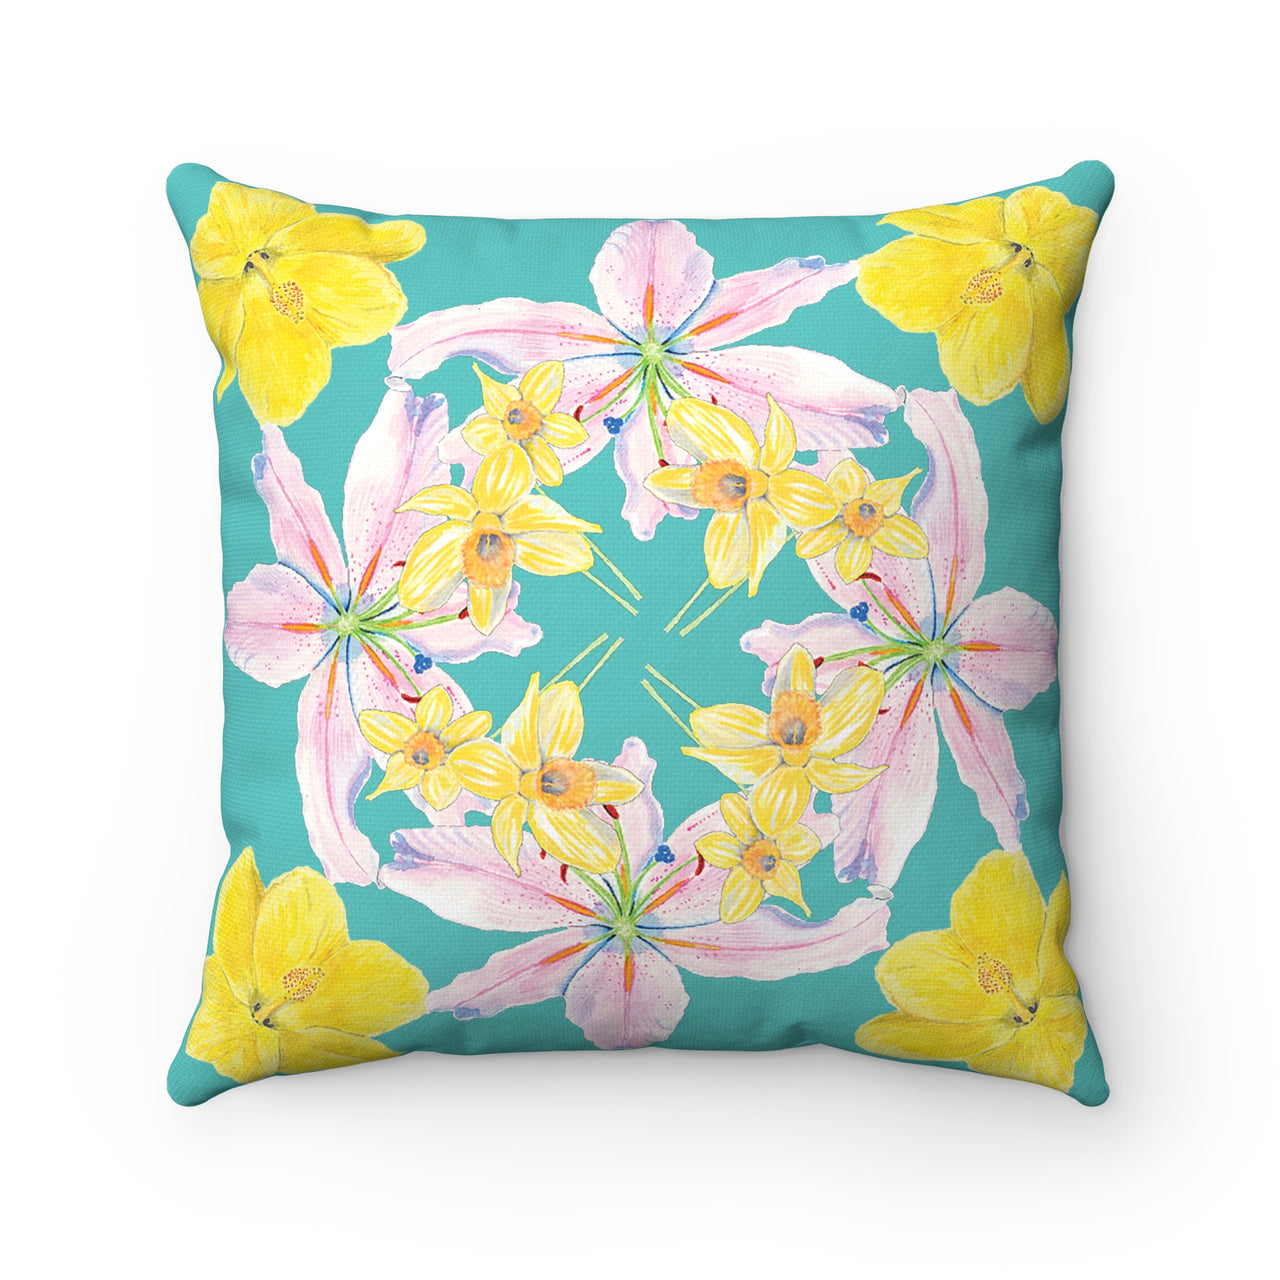 Pillow - Turquoise with Hibiscus, Pink Lily, Daffodil Print - Spun Polyester Square